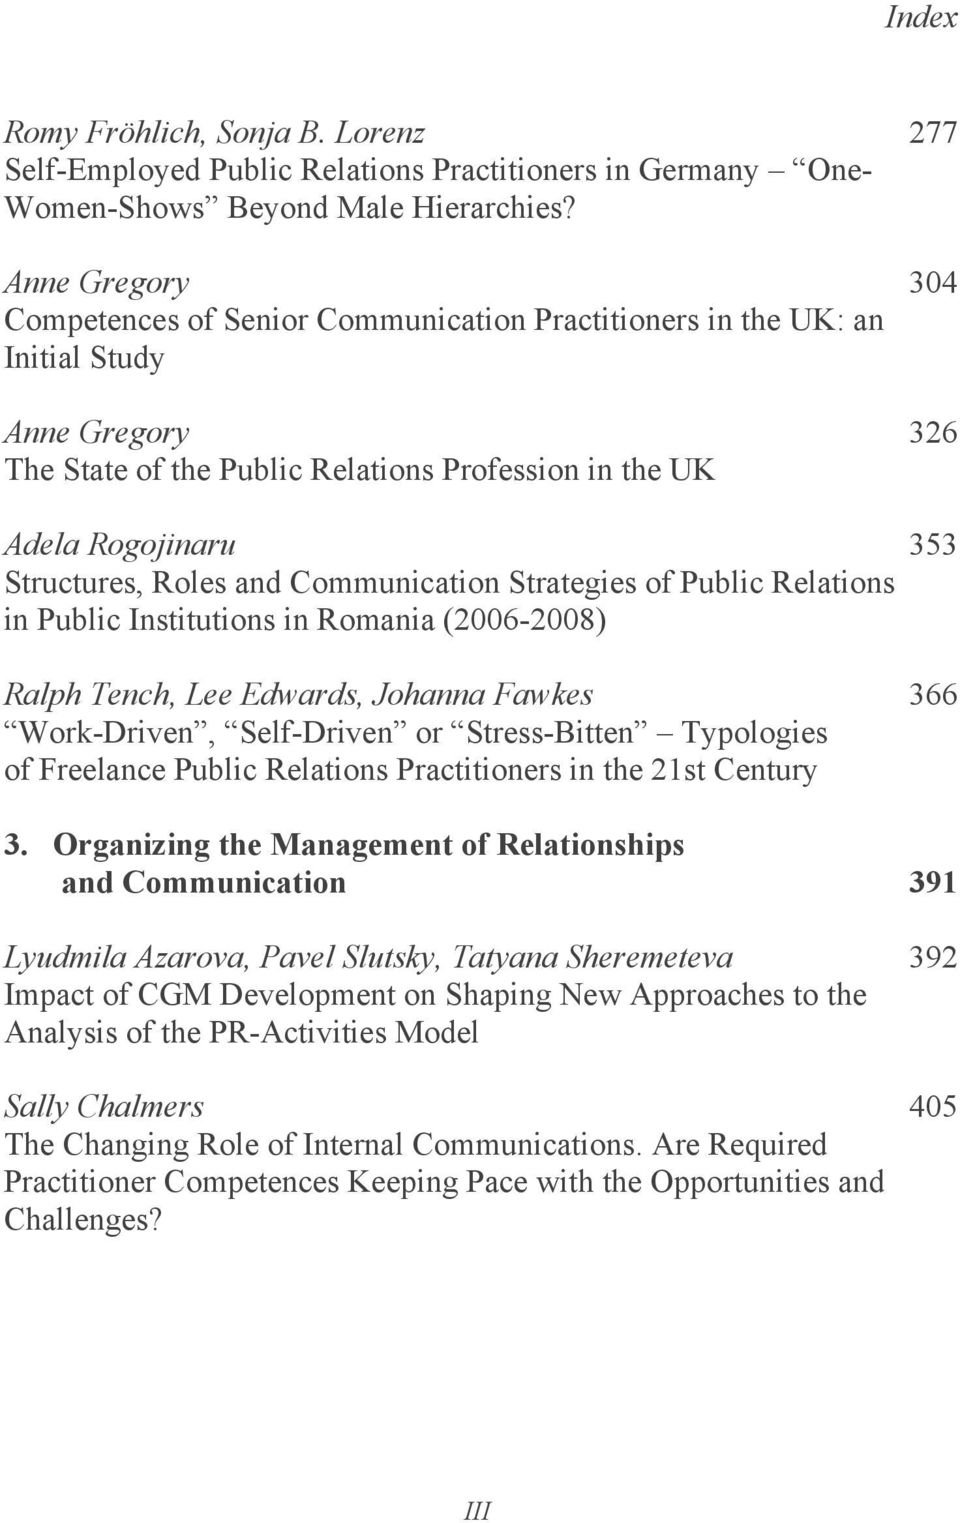 Roles and Communication Strategies of Public Relations in Public Institutions in Romania (2006-2008) Ralph Tench, Lee Edwards, Johanna Fawkes 366 Work-Driven, Self-Driven or Stress-Bitten Typologies